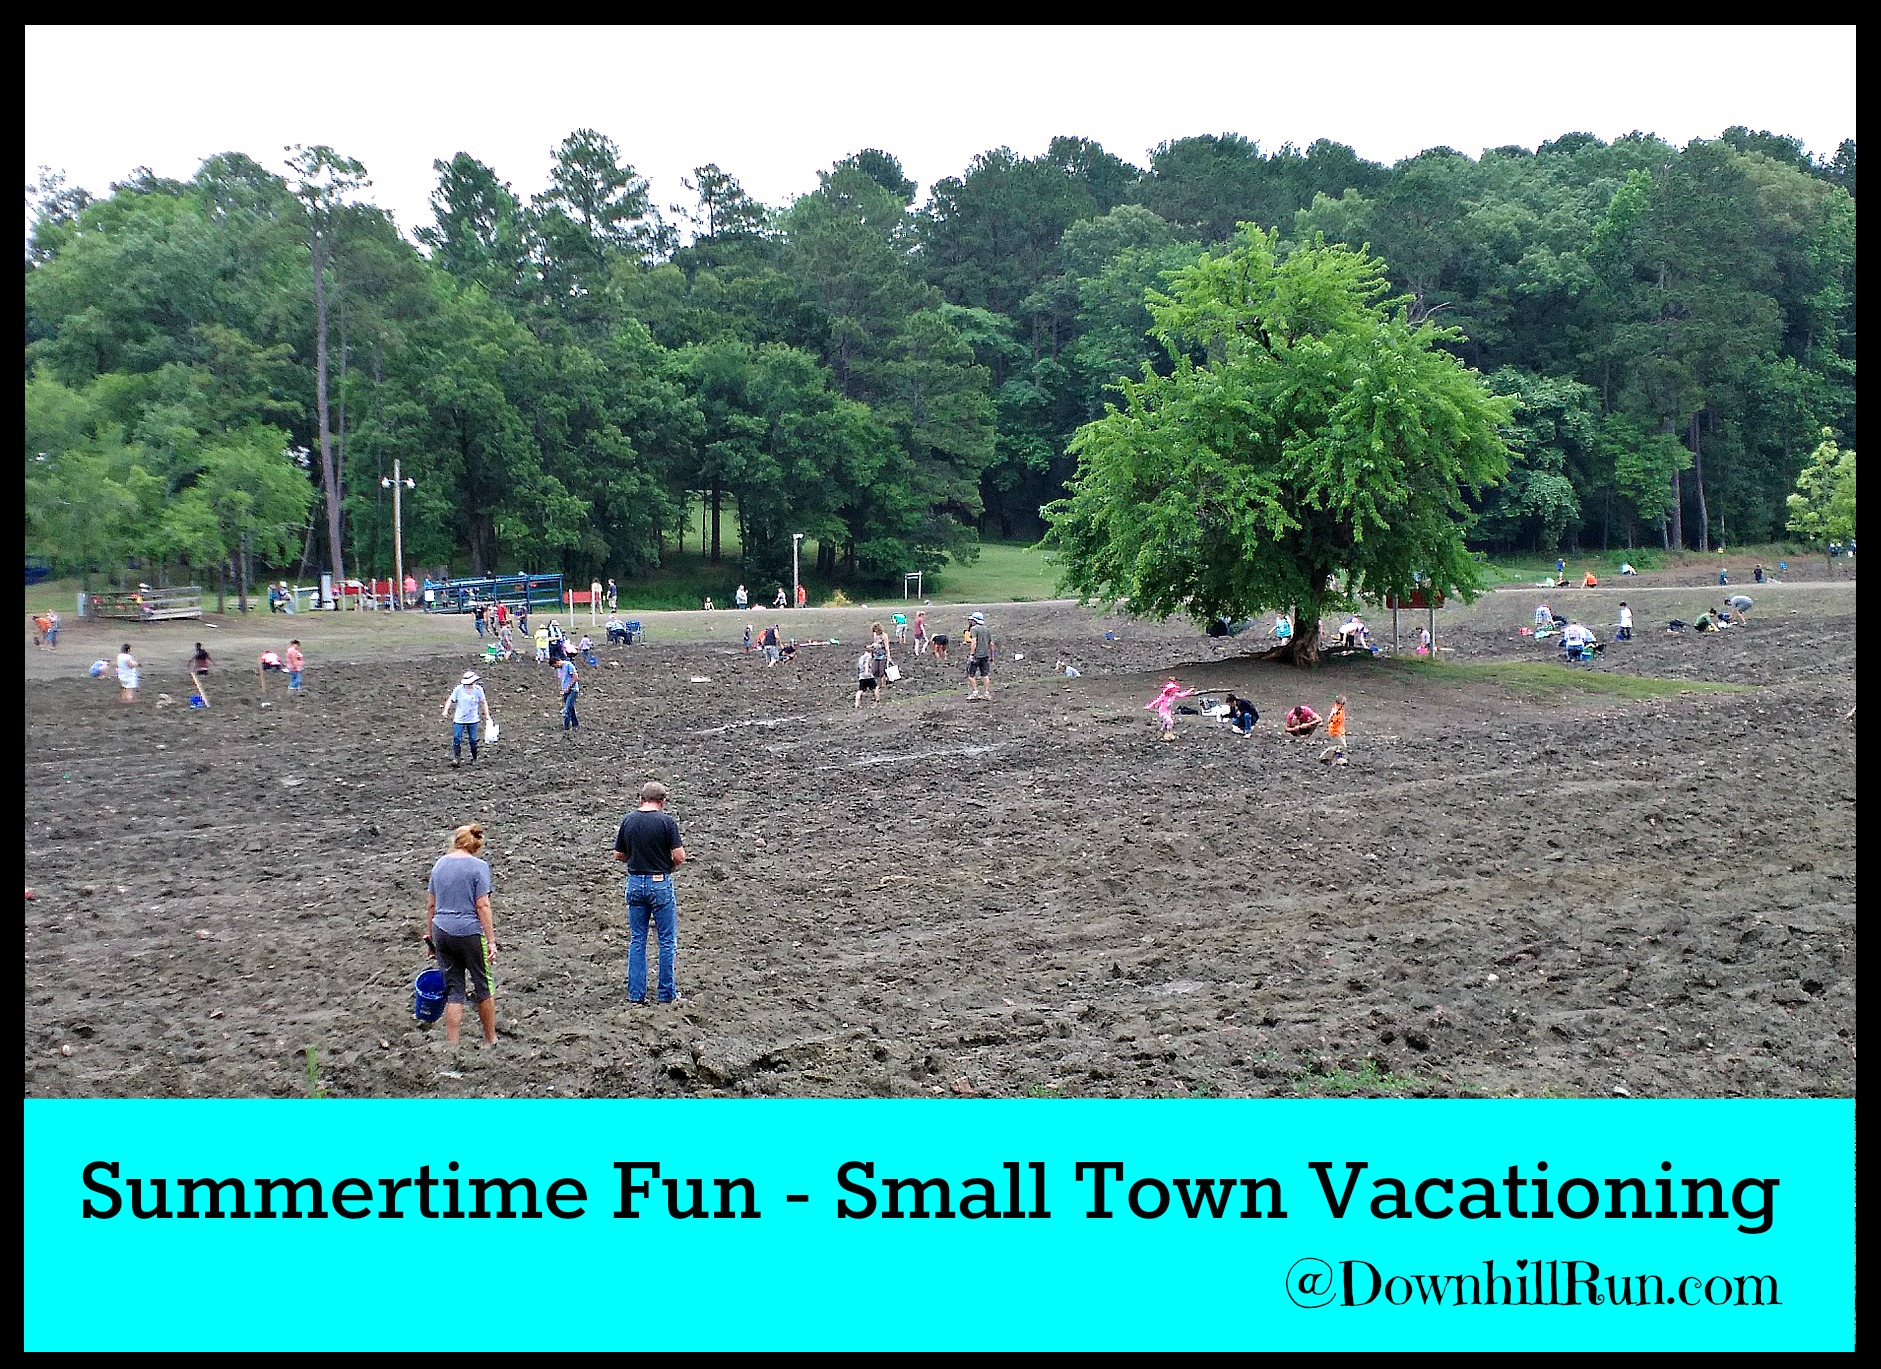 Summertime Fun Small Town Vacationing